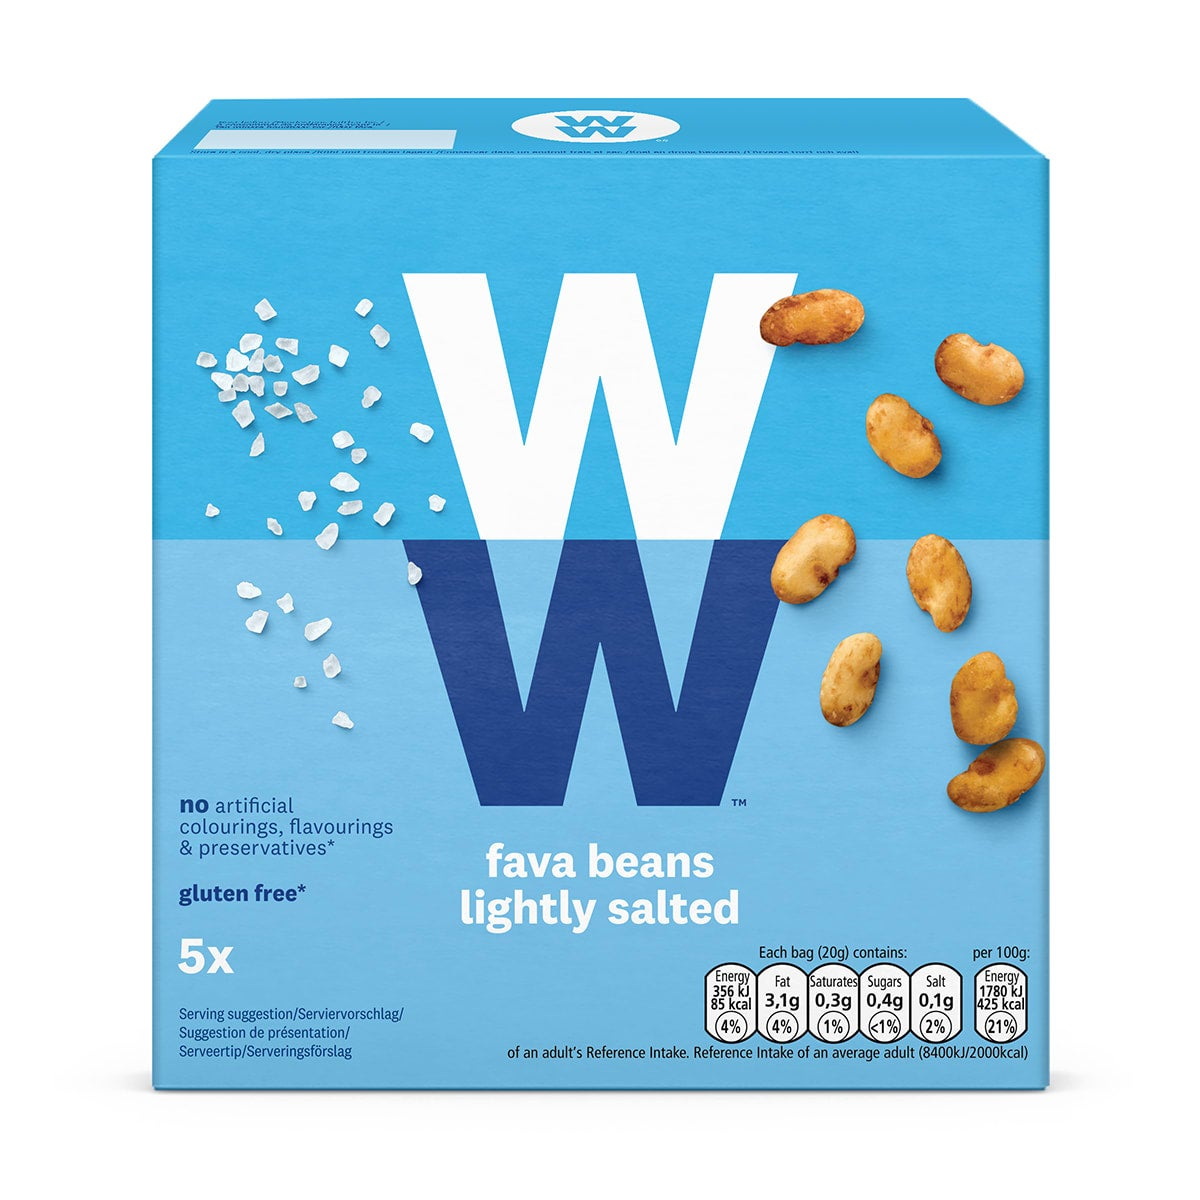 Roasted, lightly salted WW Fava Beans, ideal on-the-go snack, high in protein, 2 SmartPoints values, suitable for vegans